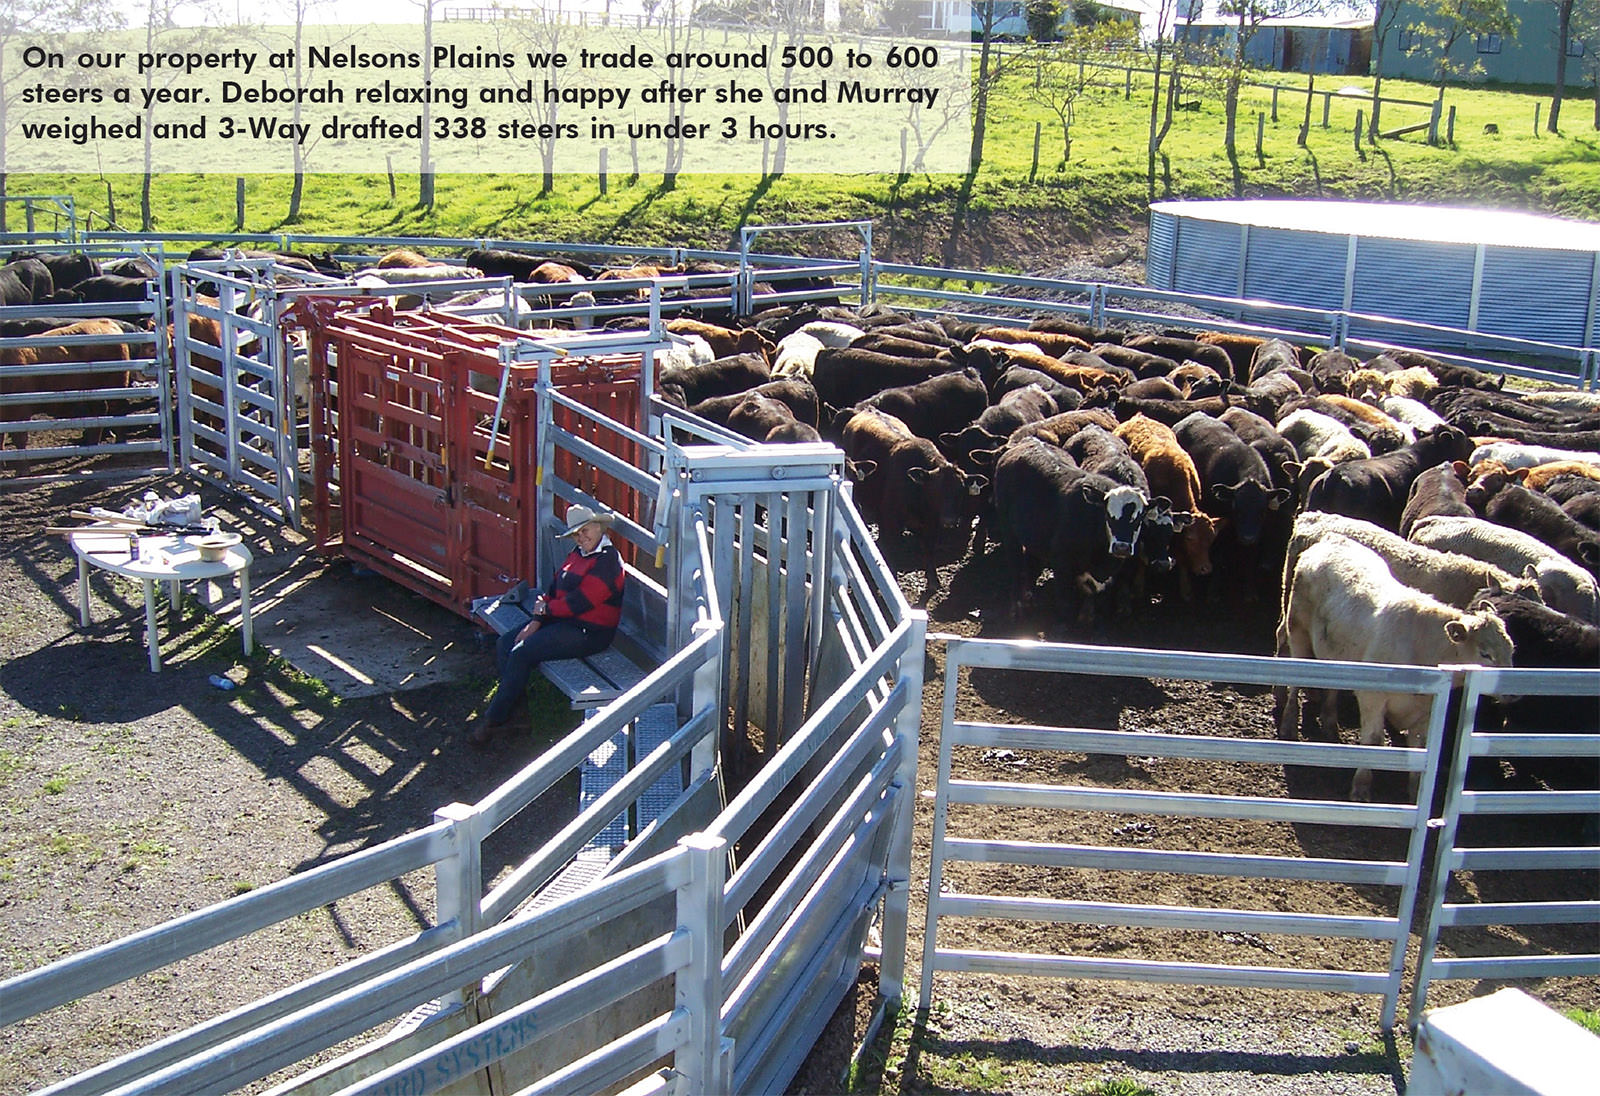 On our property at Nelsons Plains we trade around 500 to 600 steers a year. Deborah relaxing and happy after she and Murray weighed and 3-Way drafted 338 steers in under 3 hours.